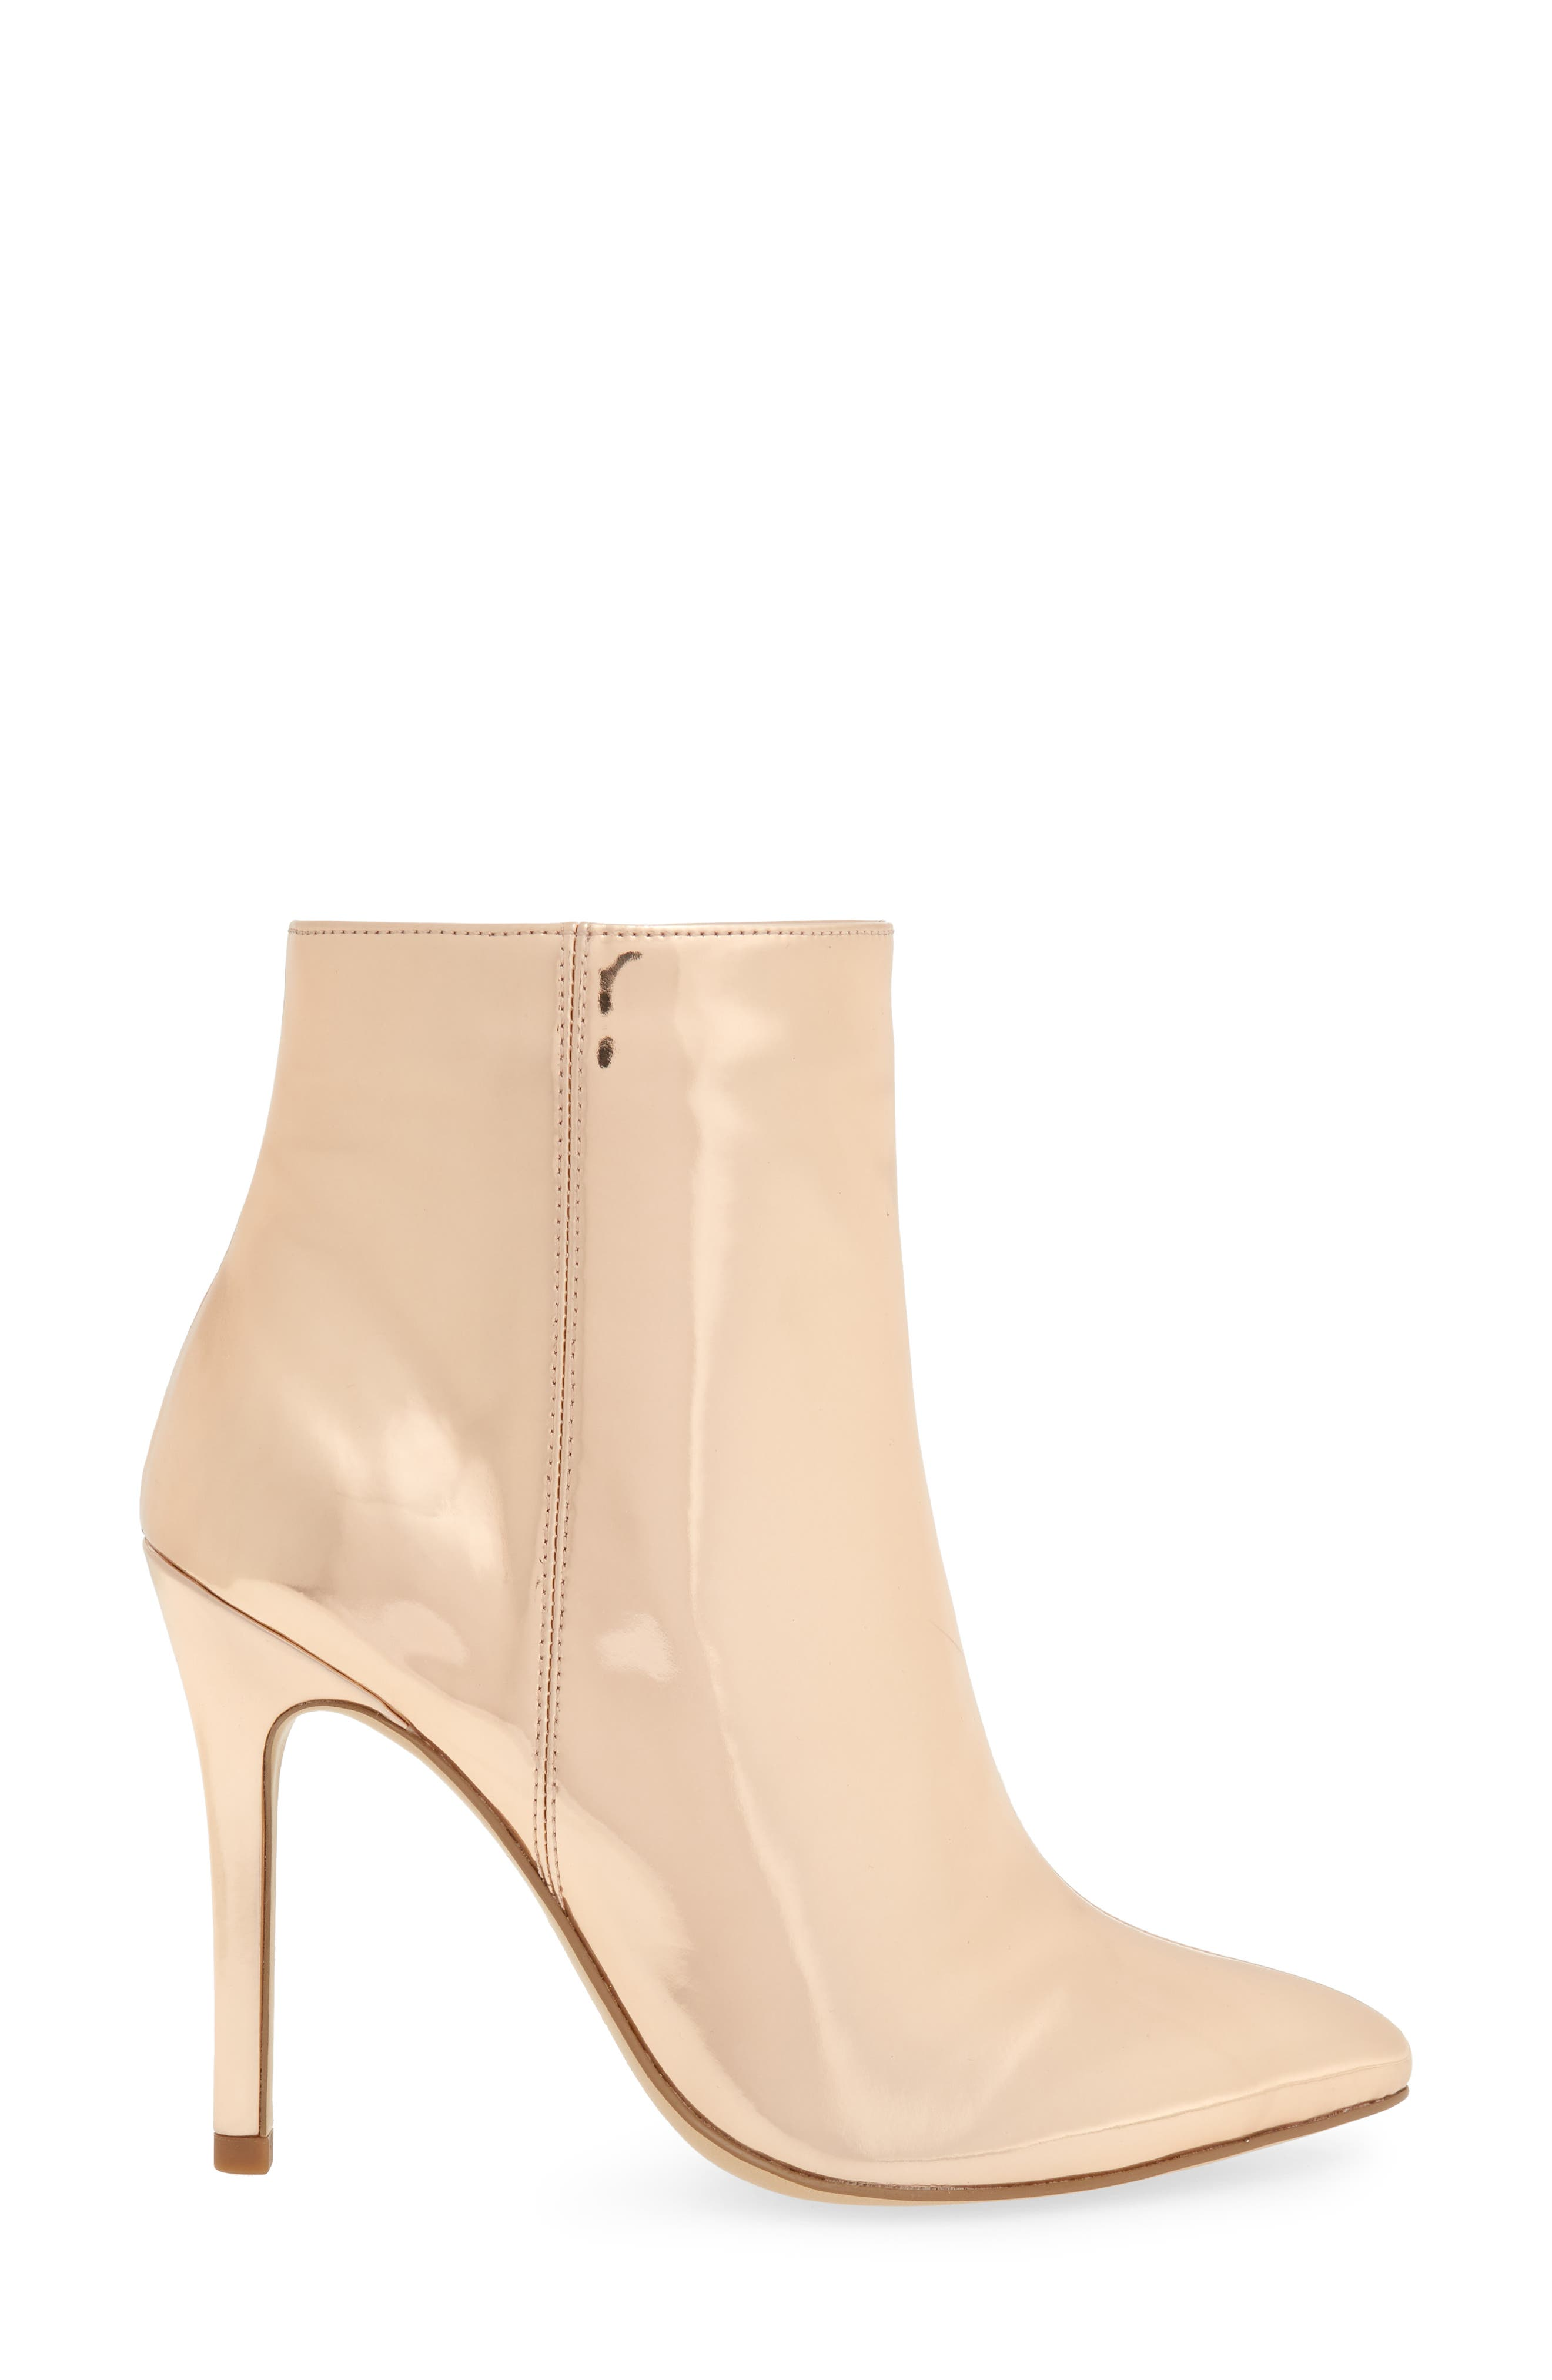 CHARLES BY CHARLES DAVID, Delicious Bootie, Alternate thumbnail 3, color, ROSE GOLD LEATHER